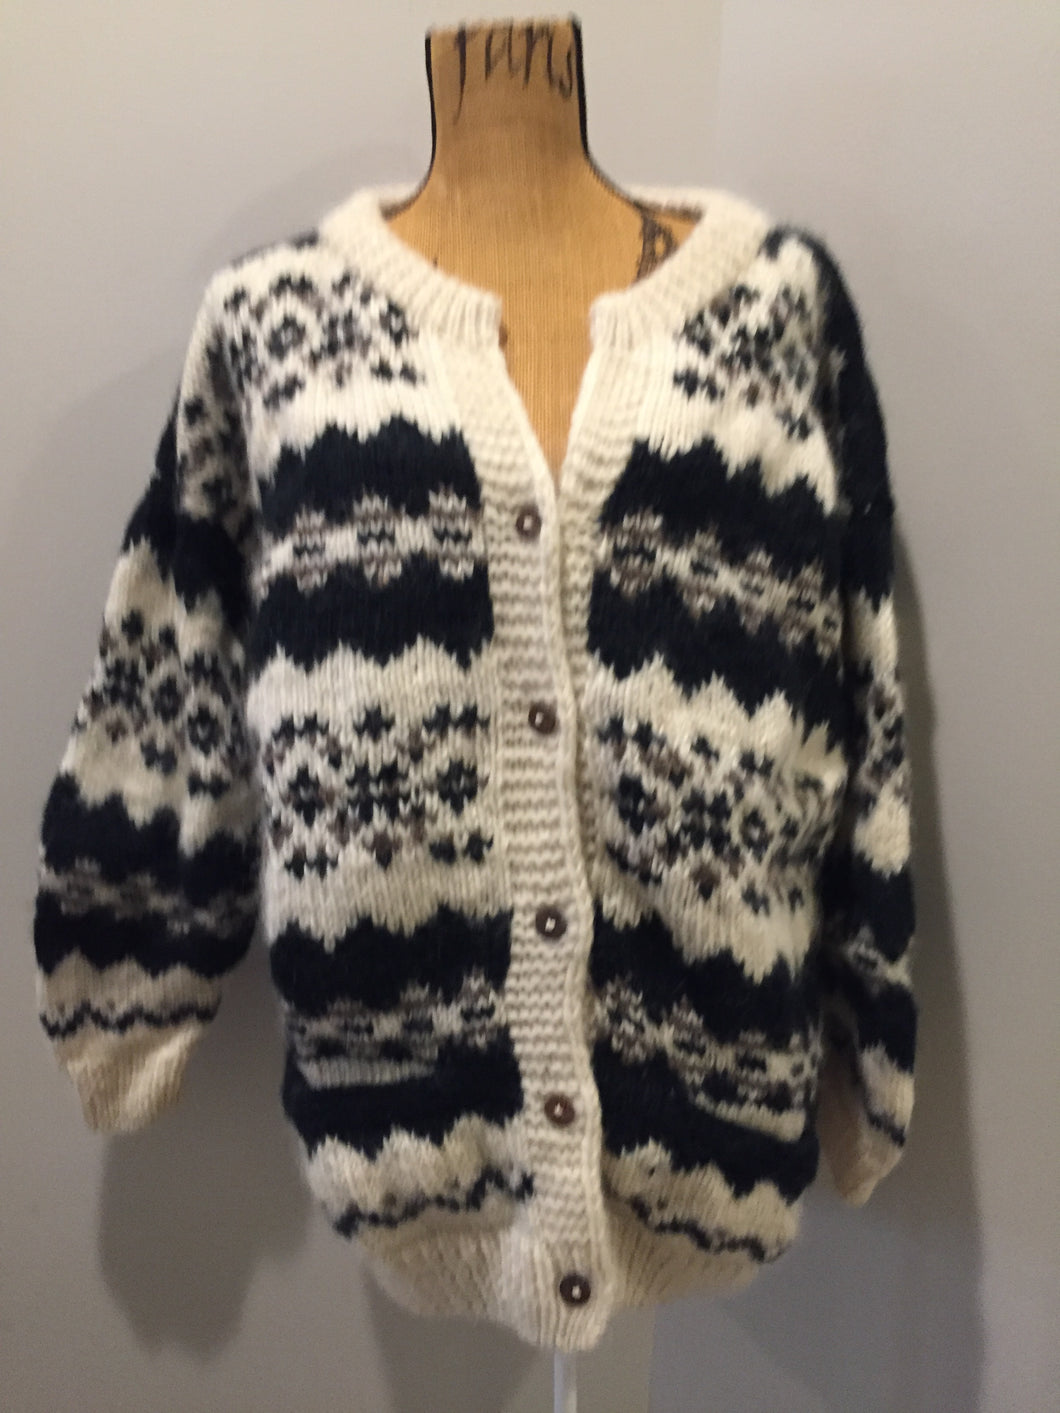 Kingspier Vintage - Vintage Casbah Imports wool cardigan in cream, black and brown with button closures and pockets. Size XXL.